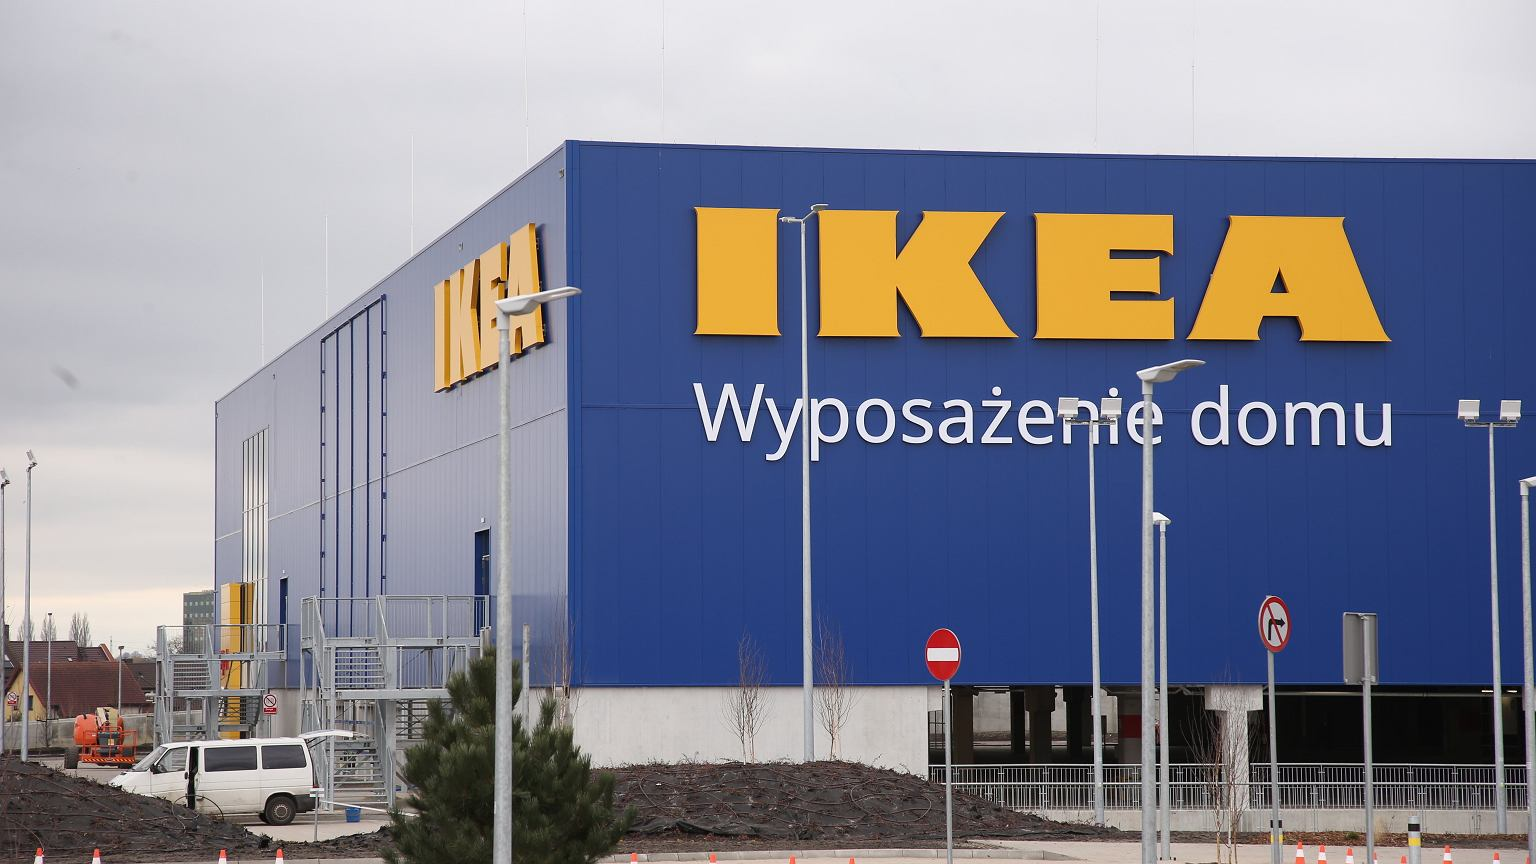 Hardware Stores And Lockdown How Will Ikea Obi Castorama Or Leroy Merlin Work World Today News